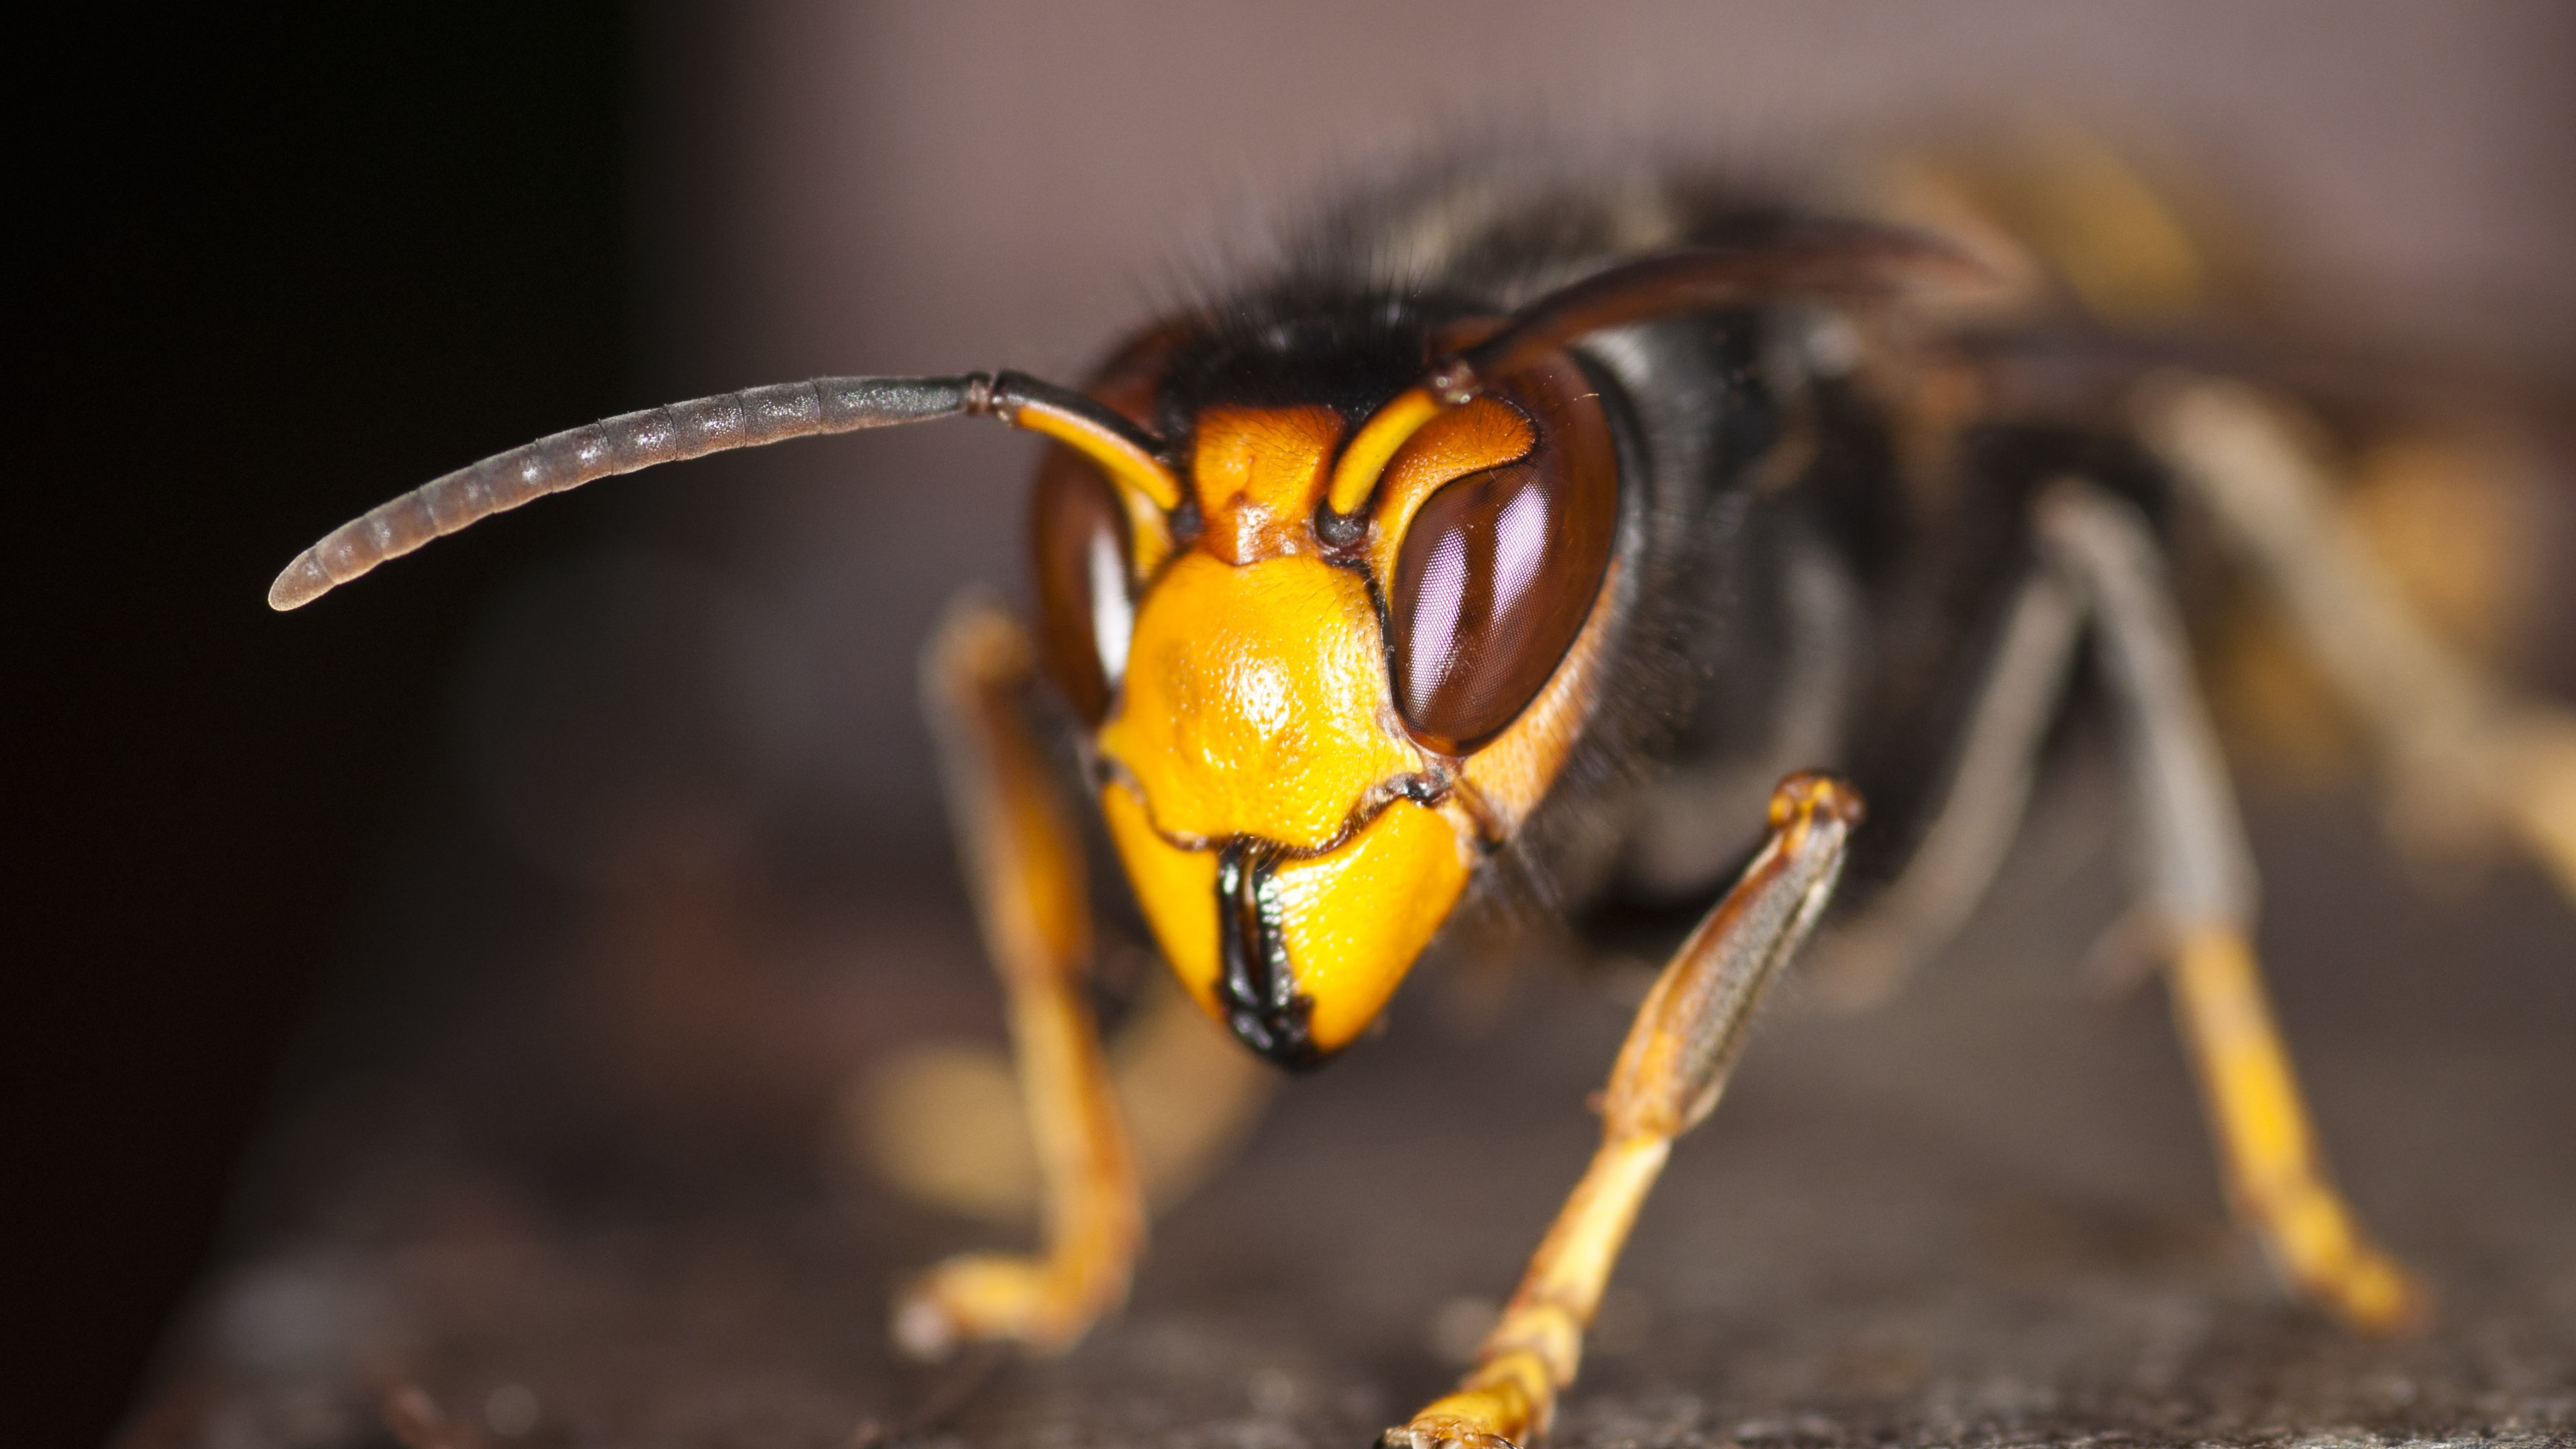 Asian hornet wallpaper 3840x2160